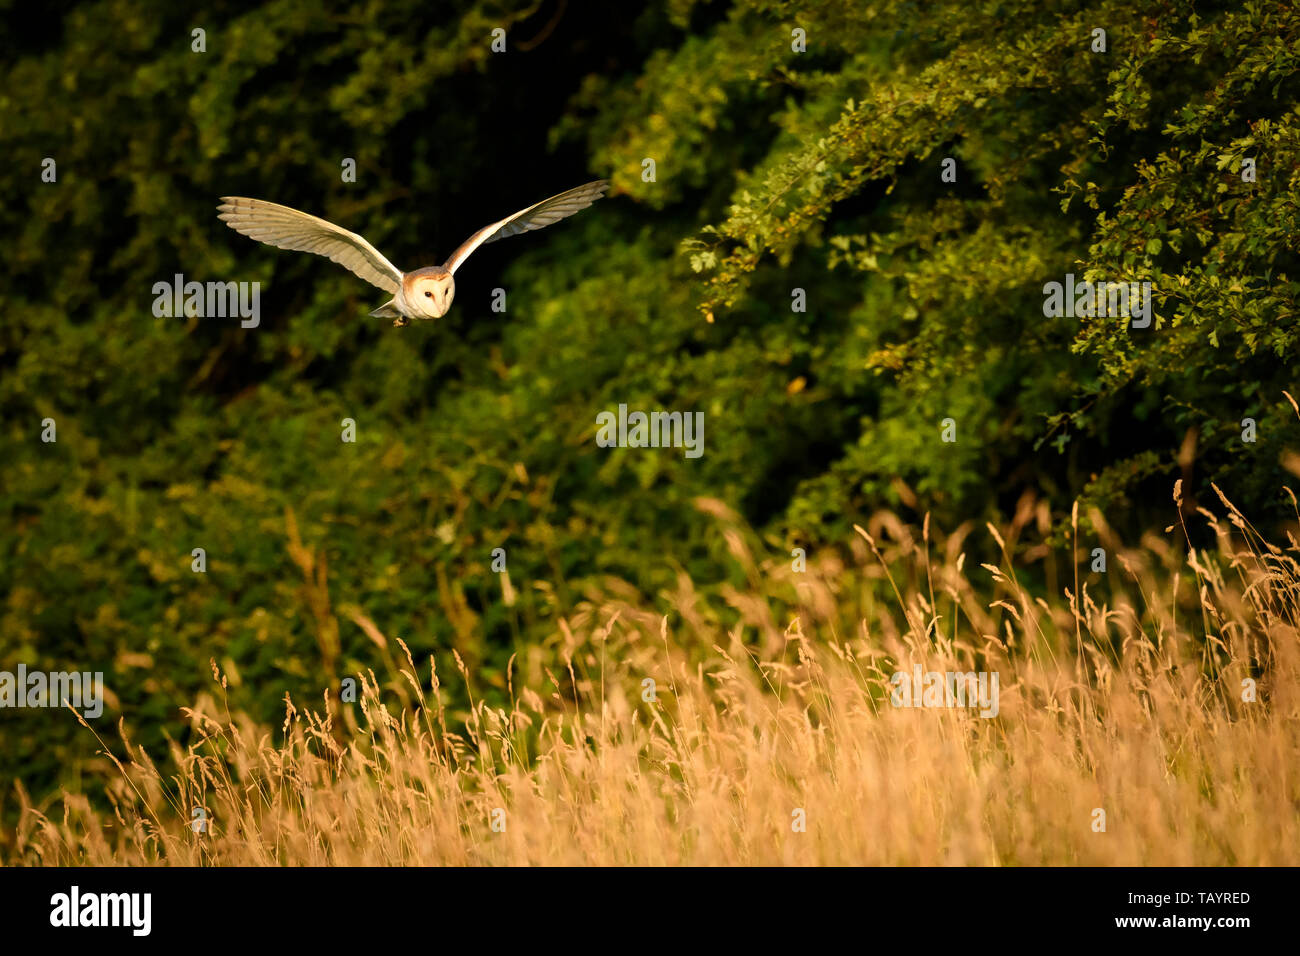 Barn Owl (Tyto alba) lit by evening sunlight in hunting habitat, flying low over rough grassland, wings spread - Baildon, West Yorkshire, England, UK. Stock Photo